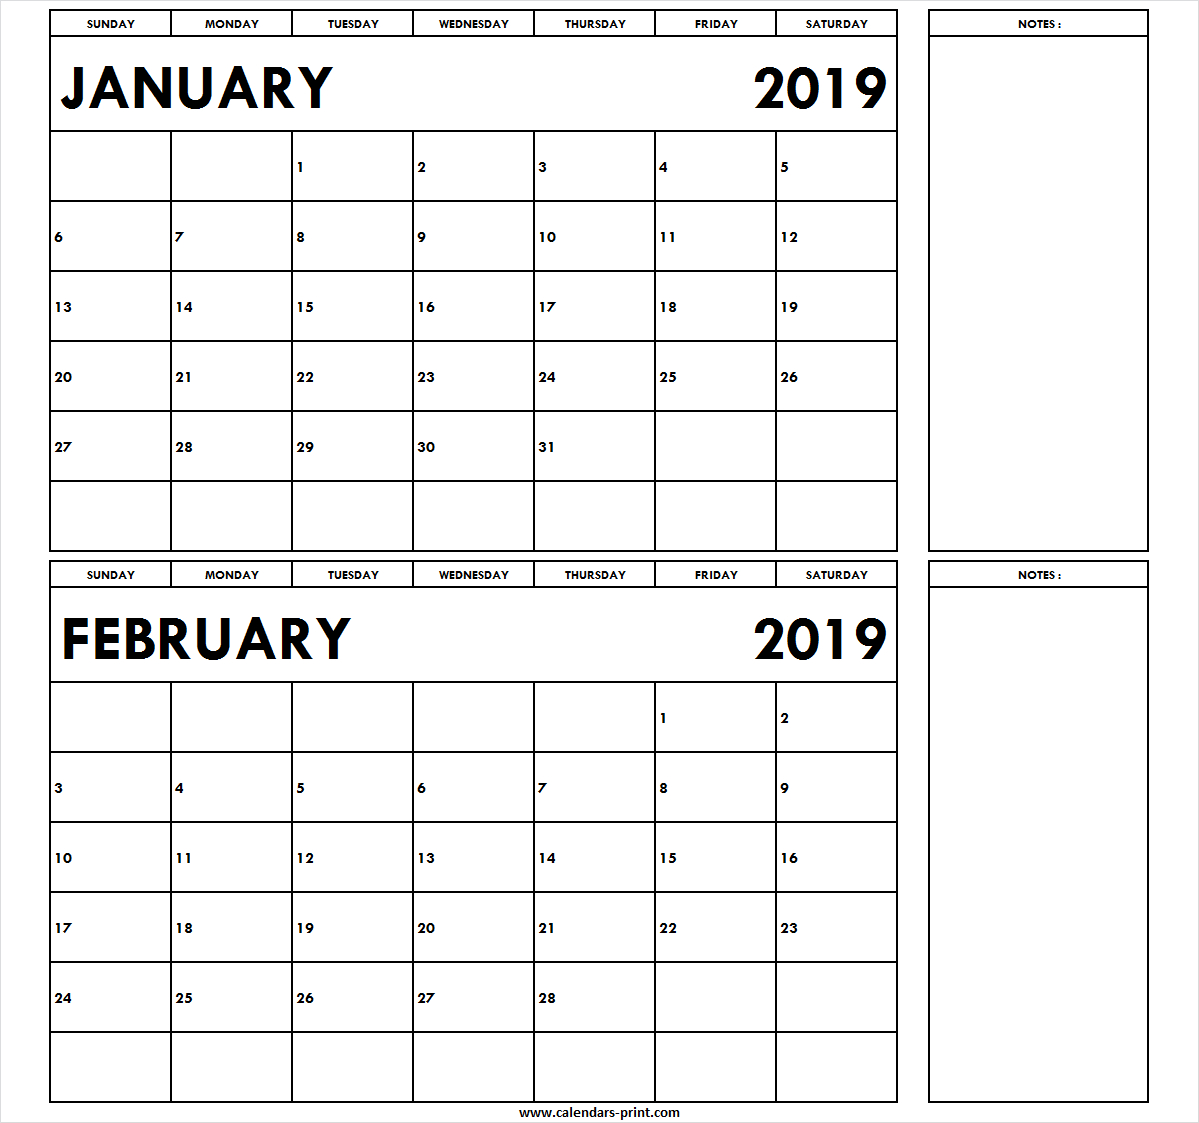 Download Free Templates | January February 2019 Calendar Template Calendar 2019 Jan Feb